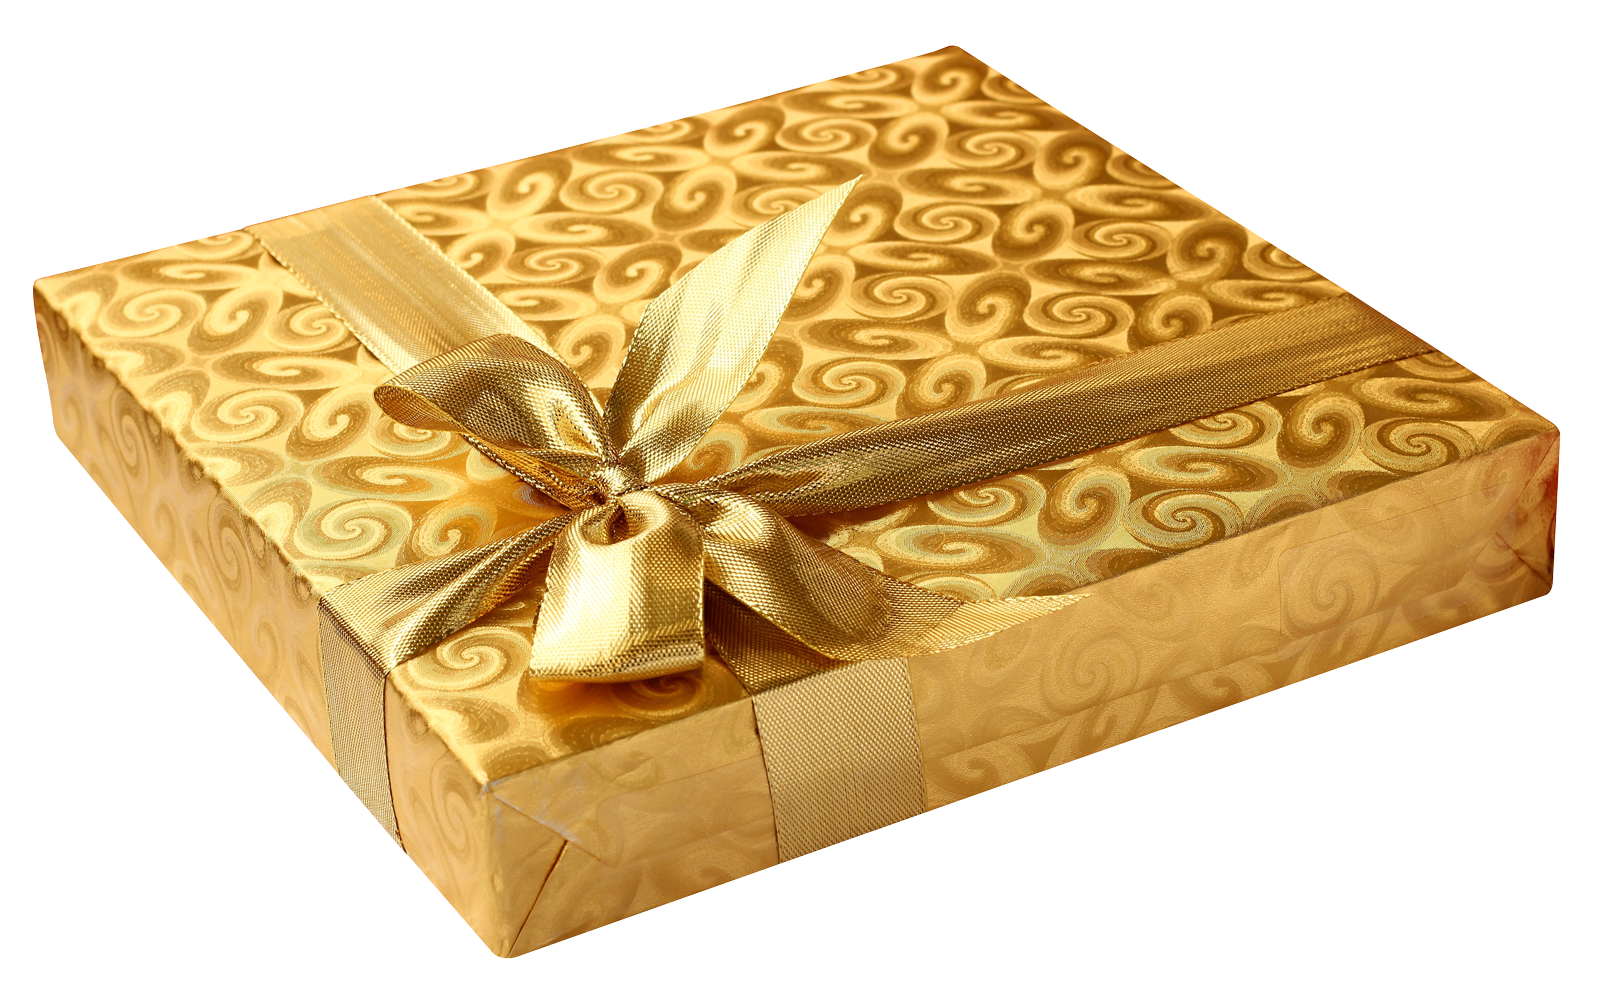 Golden Birthday Gift Png Image Purepng Free Transparent Cc0 Png